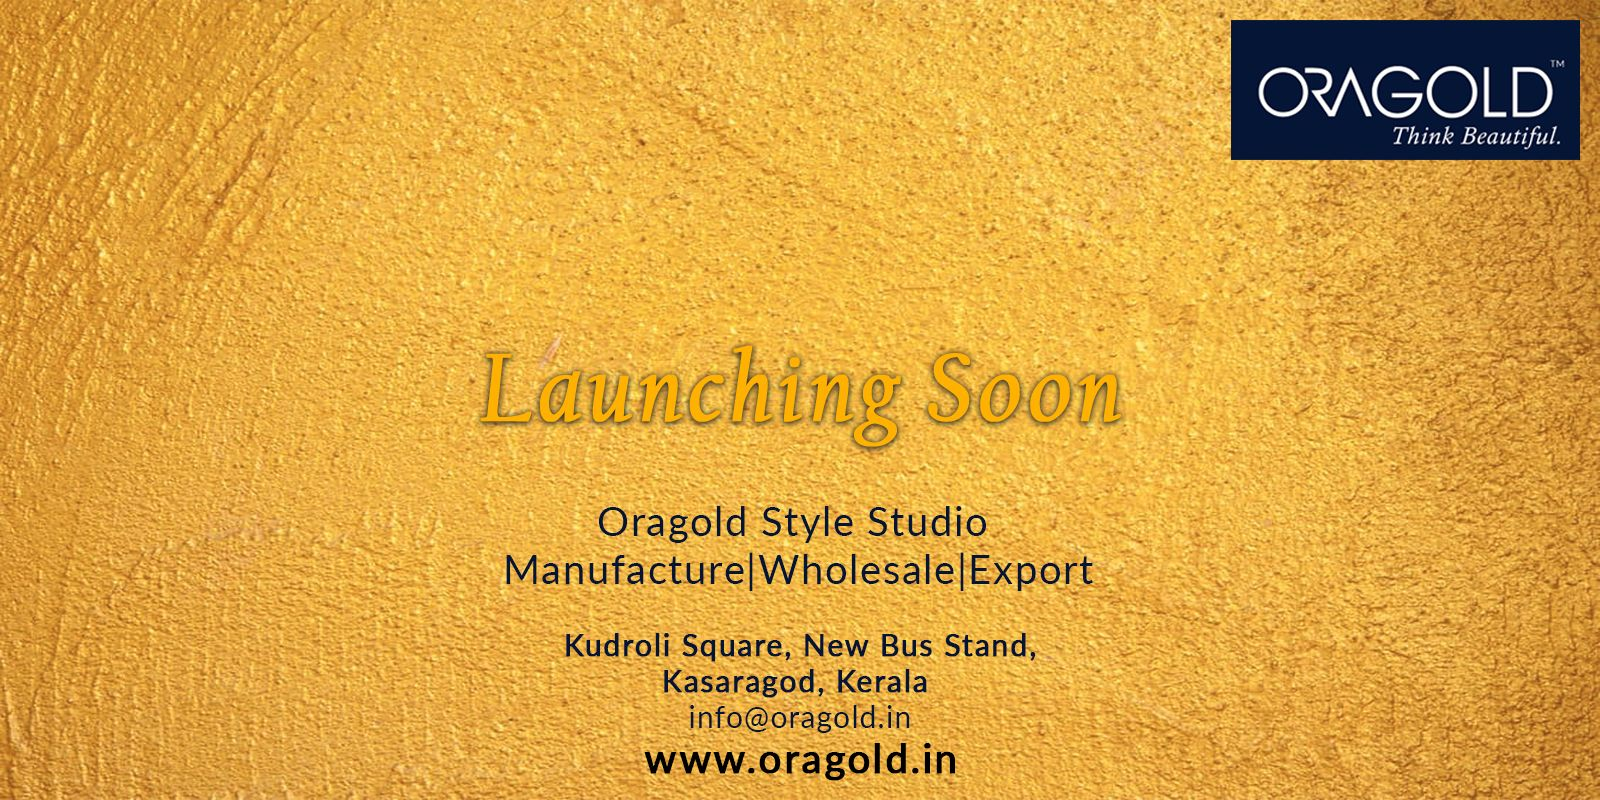 Launching Soon, Keep visiting www.oragold.in  To any kind of information, Please drop your mails on info@oragold.in  #Jewelry #instajewelry #jewelryforsale #style #Bracelet #Necklace #metal #accessories #selfmade #design #earrings #jewelrygram #swag #new #instadaily #sterlingsilverjewelry #Silver #etsyhandmade #pendant #fashionjewelry